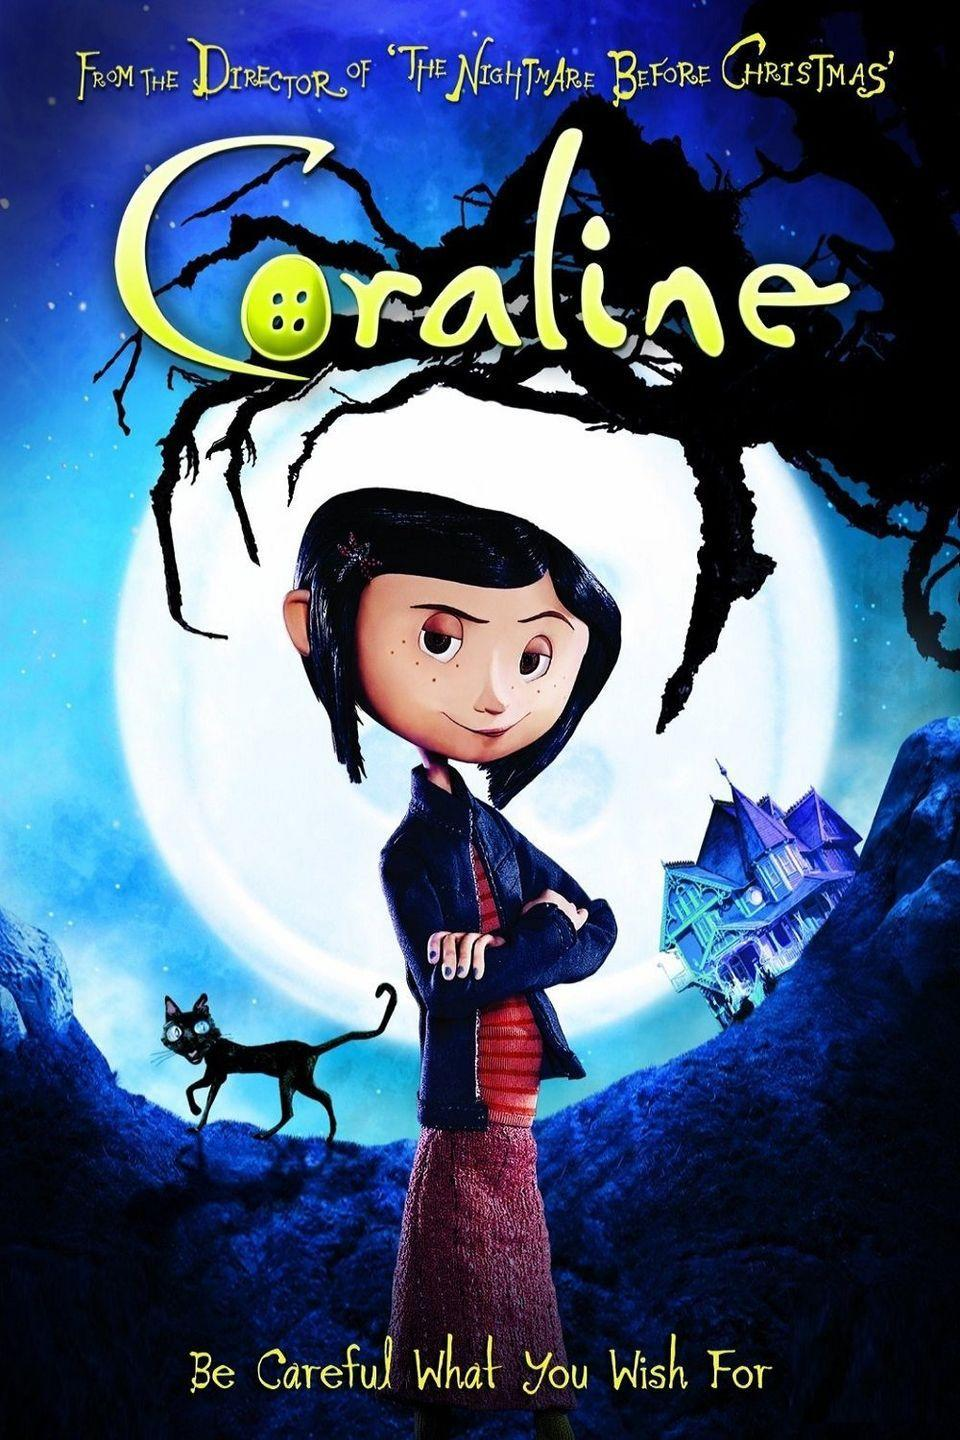 """<p>Coraline spends a lot of time alone at home after her parents move from Michigan to Oregon. It is in her new house that discovers the Other World, which includes Other Mother and Other Father, who spend more time with her than her own parents. When Coraline realizes, though, that the Other World is not as it seems, she must attempt to make her way back home to her real parents. </p><p><a class=""""link rapid-noclick-resp"""" href=""""https://www.amazon.com/Coraline-Dakota-Fanning/dp/B089DV39D2/?tag=syn-yahoo-20&ascsubtag=%5Bartid%7C10065.g.29354714%5Bsrc%7Cyahoo-us"""" rel=""""nofollow noopener"""" target=""""_blank"""" data-ylk=""""slk:Watch Now"""">Watch Now</a></p>"""